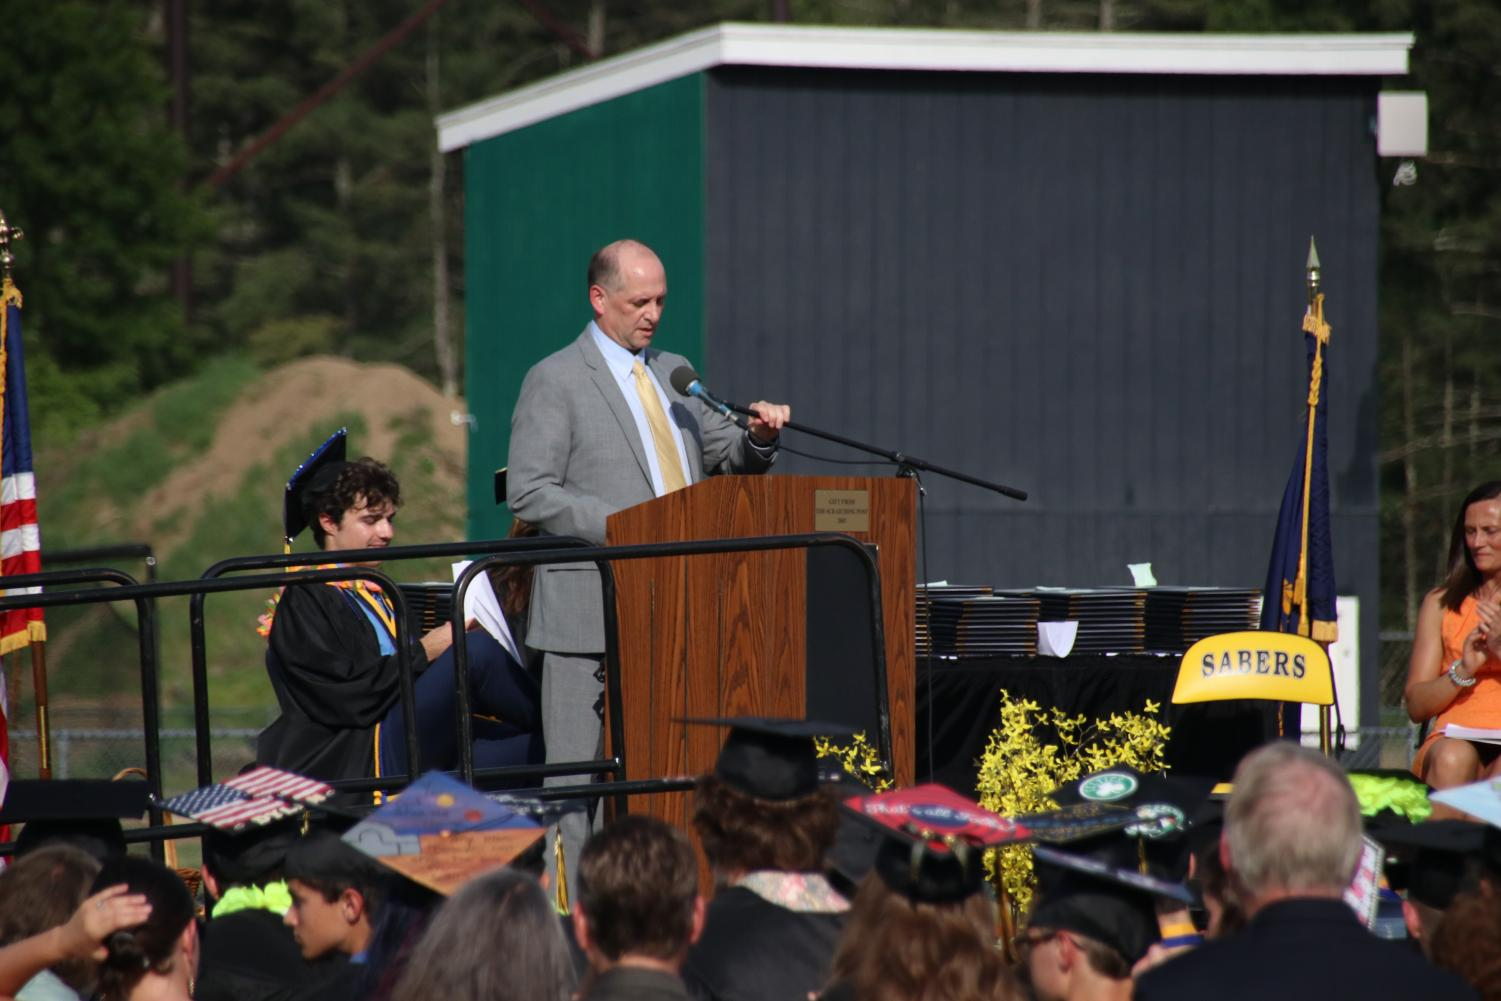 Rob+Scully%2C+principle+of+Souhegan%2C+also+addressed+the+graduating+class.